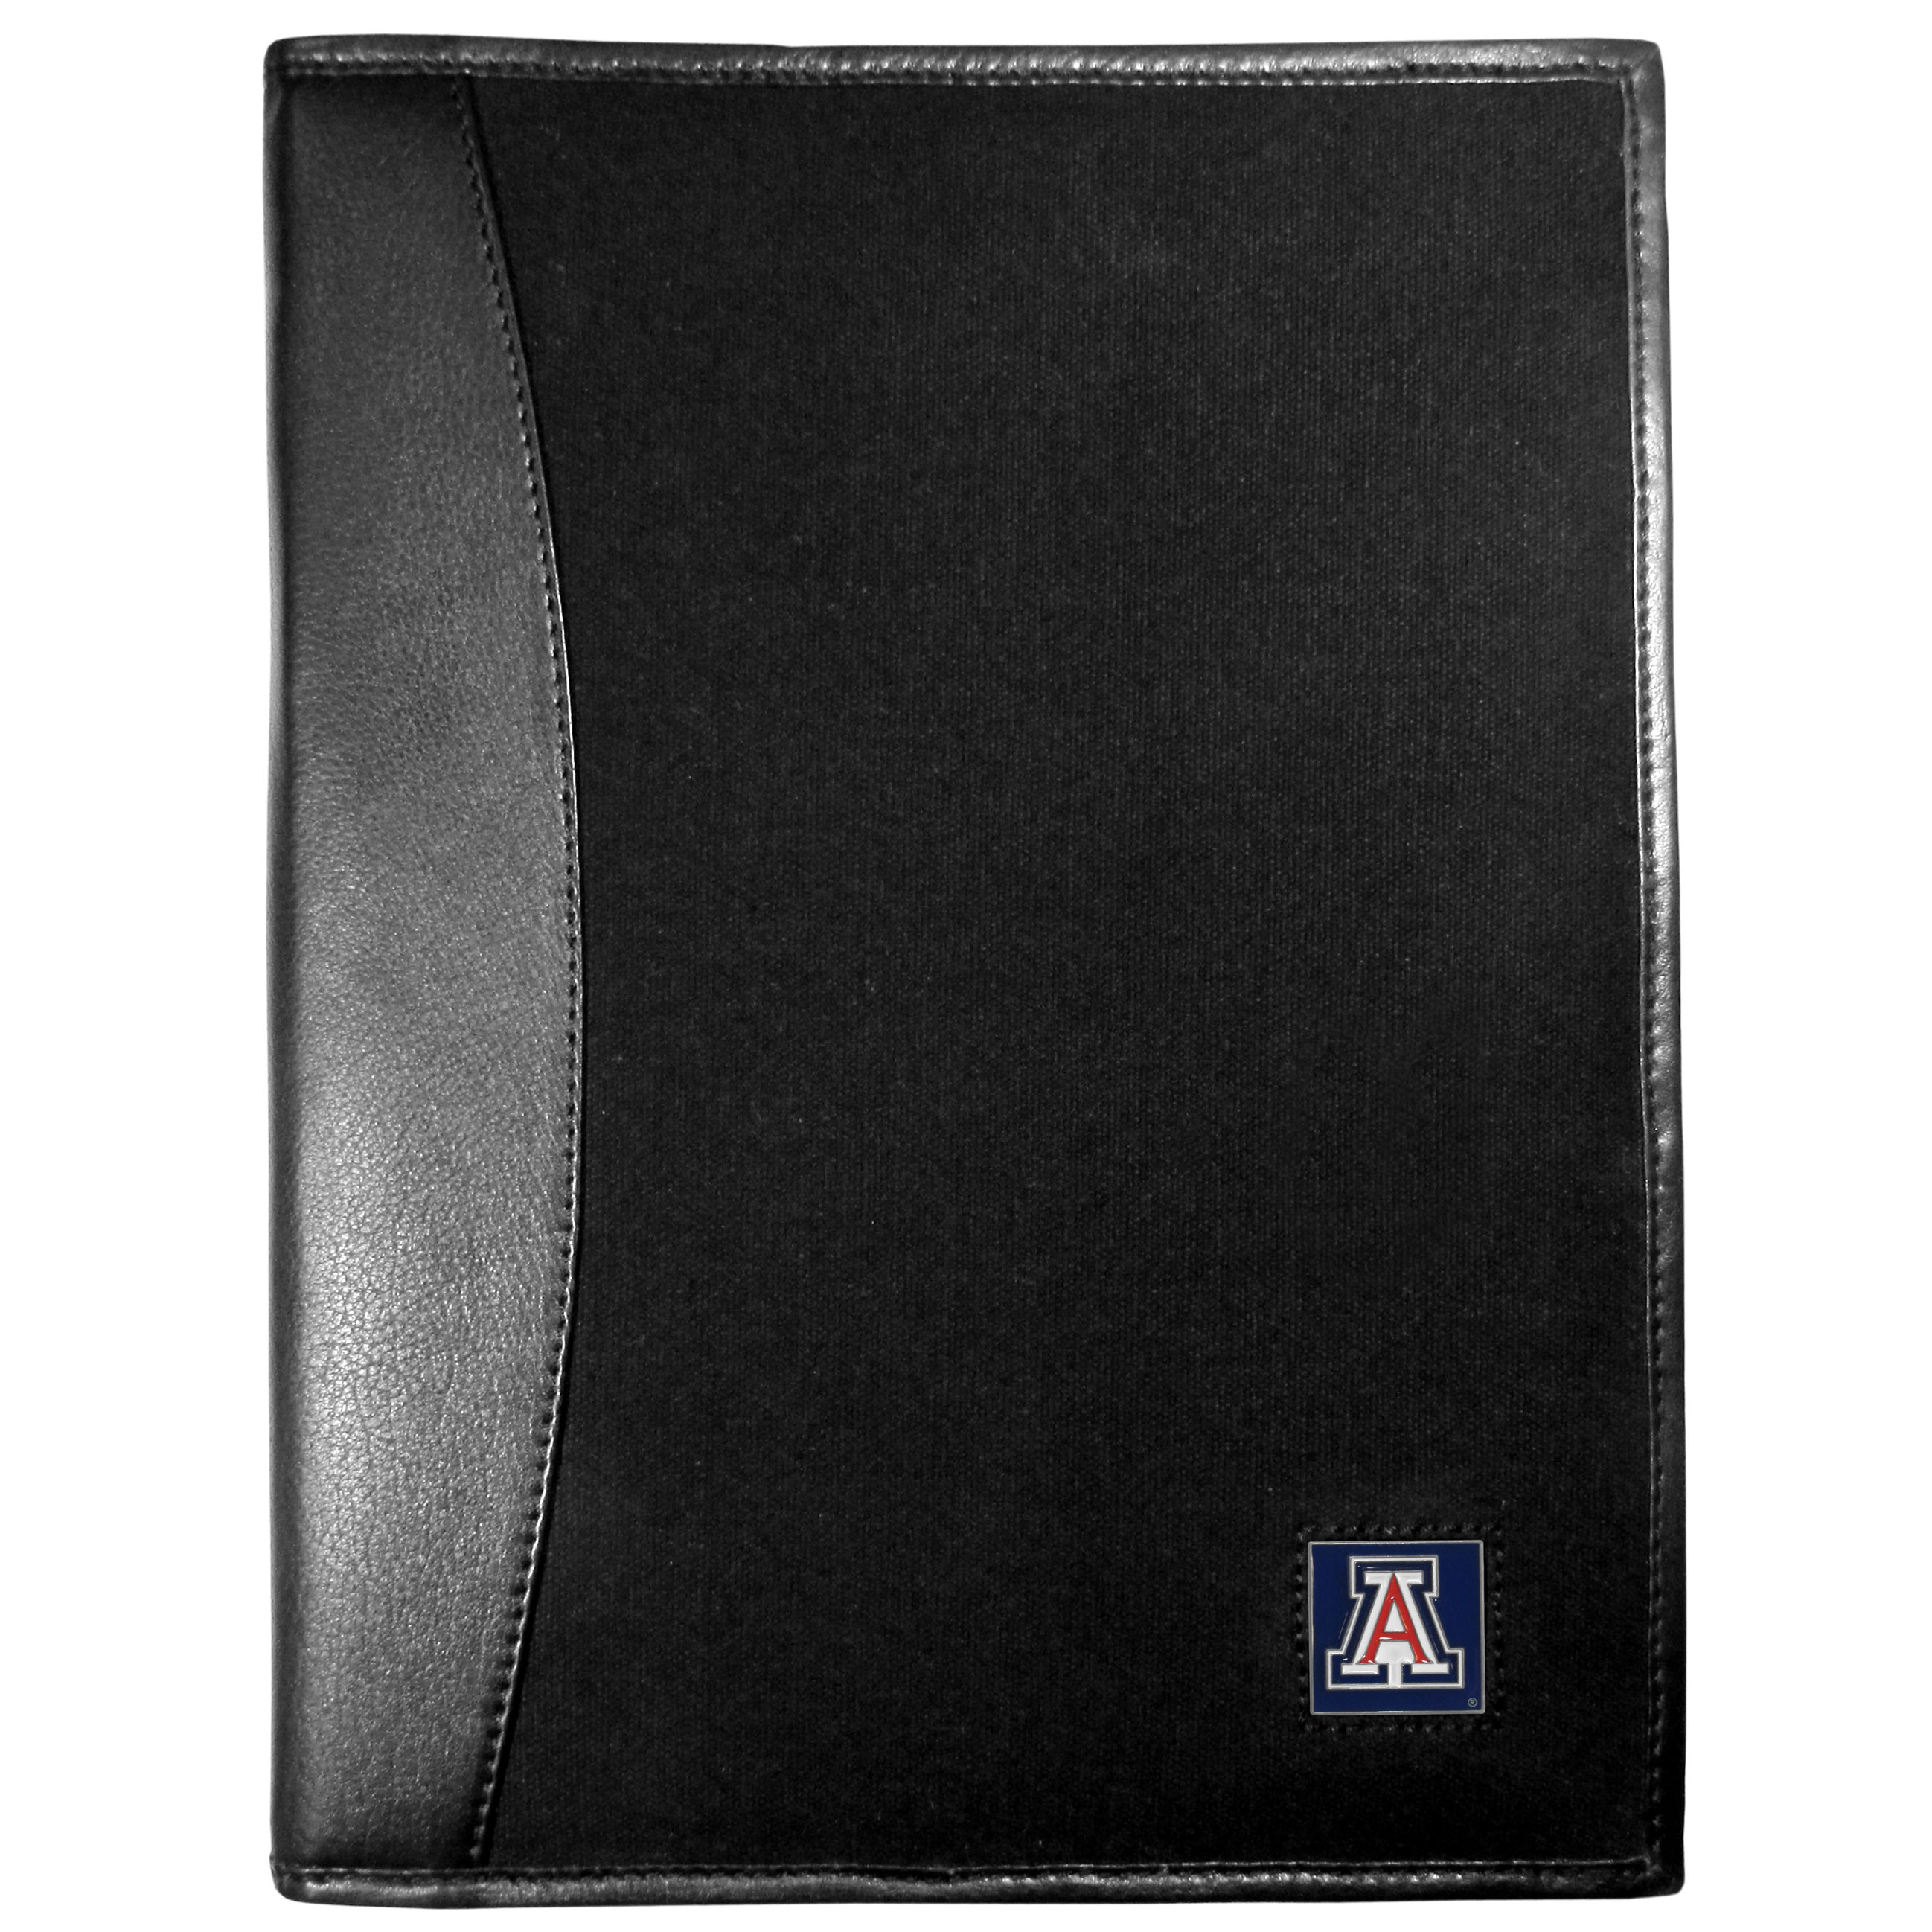 Arizona Wildcats Leather and Canvas Padfolio - Our leather and canvas padfolio perfectly blends form and function. The attractive portfolio is bound in fine grain leather with an attractive canvas finish and the interior is a soft nylon. This high quality business accessory also features a fully cast metal Arizona Wildcats emblem that is subtly set in the corner of the organizer. It is packed with features like 6 card slots for badges, business cards, hotel keys or credit cards and ID with a large pocket for loose papers and a writing tablet slot making it a must-have for the professional on the go.